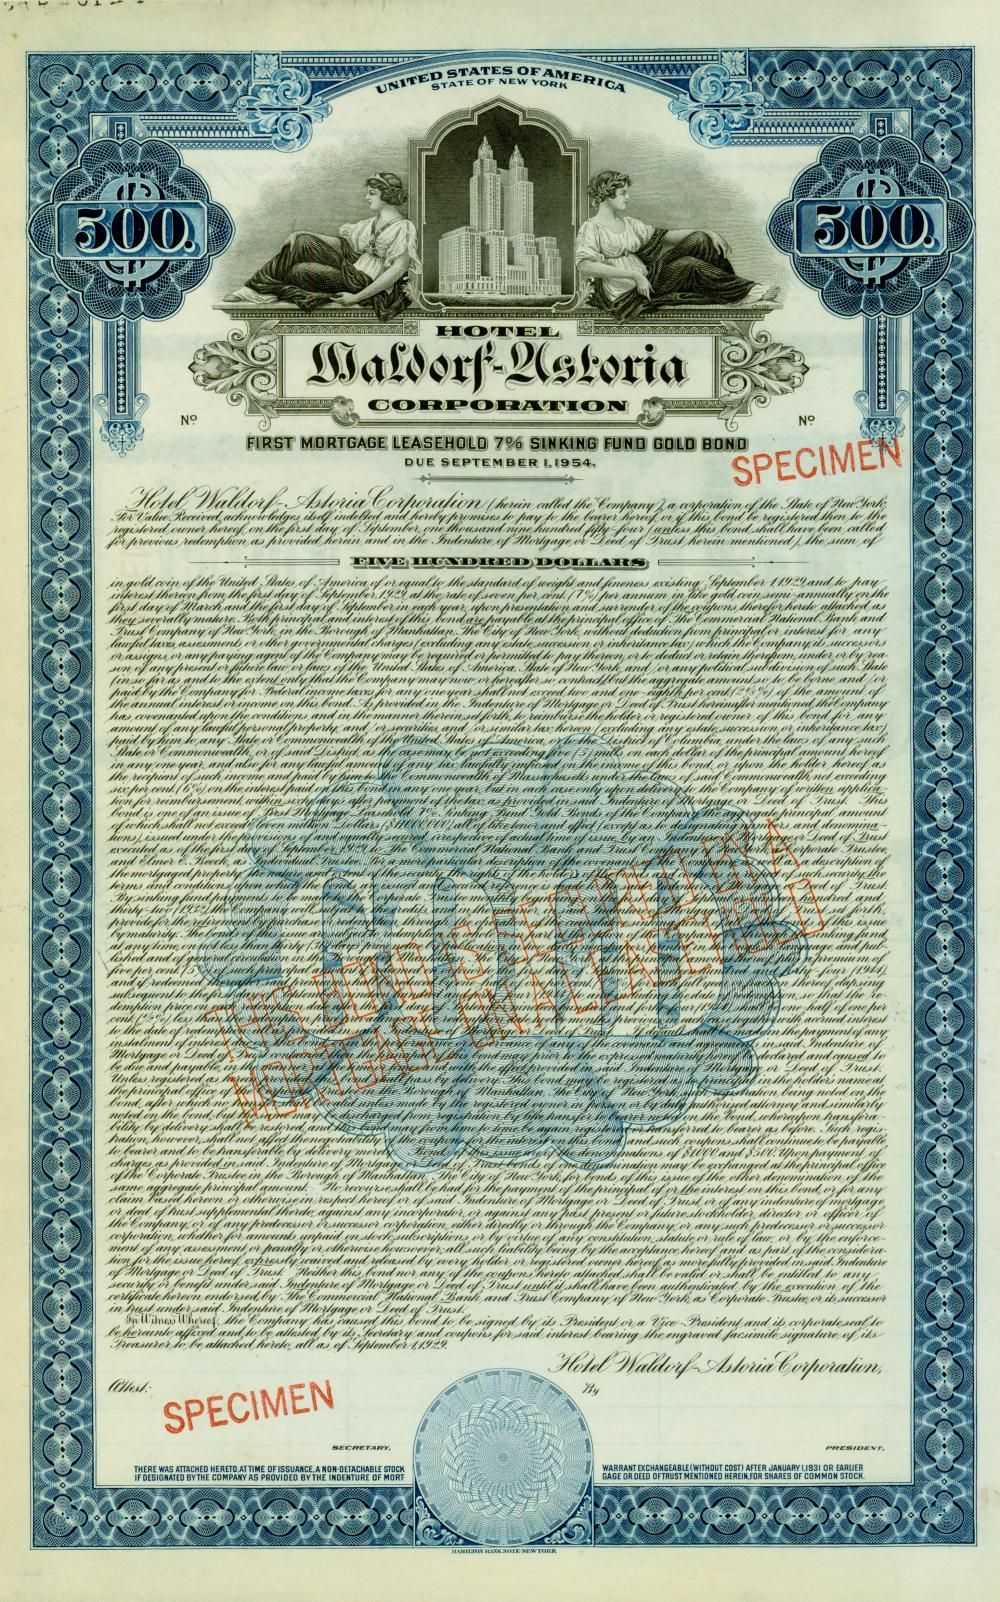 Hotel Waldorf Astoria Corporation Stock Certificates Tesla Motors Gold Bond